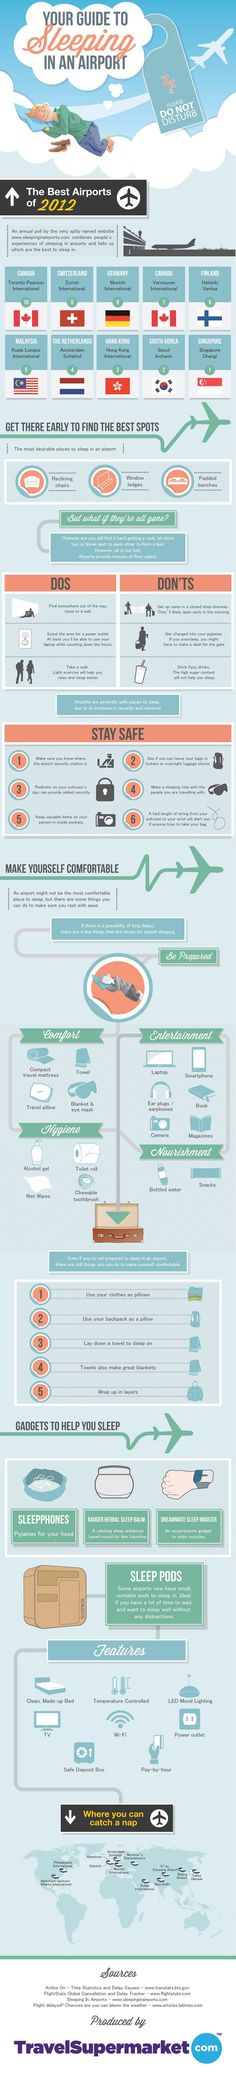 A Pro's Guide To Sleeping At The Airport [Infographic]